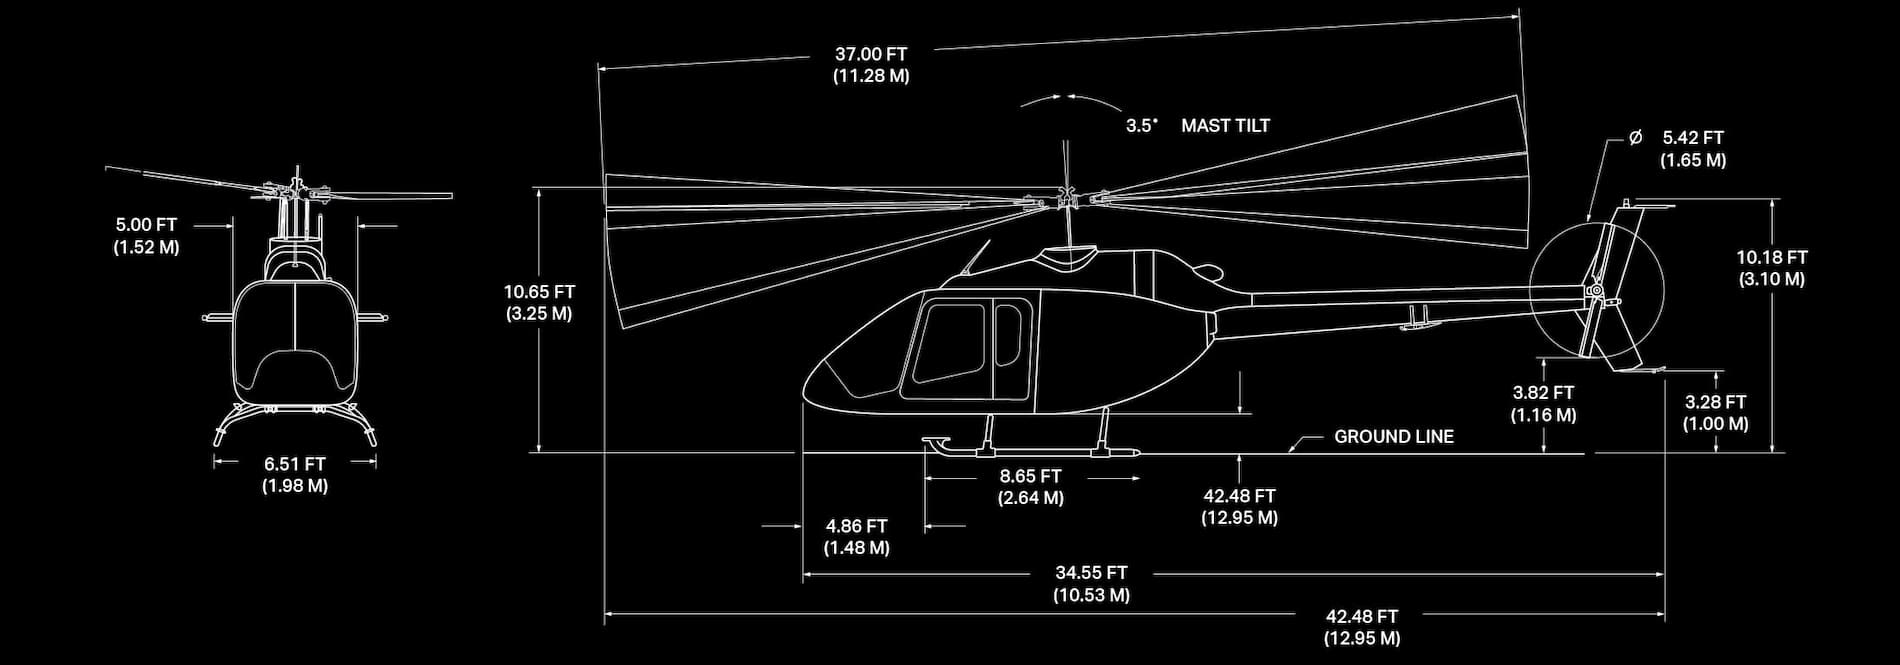 Bell 505 Specification Image